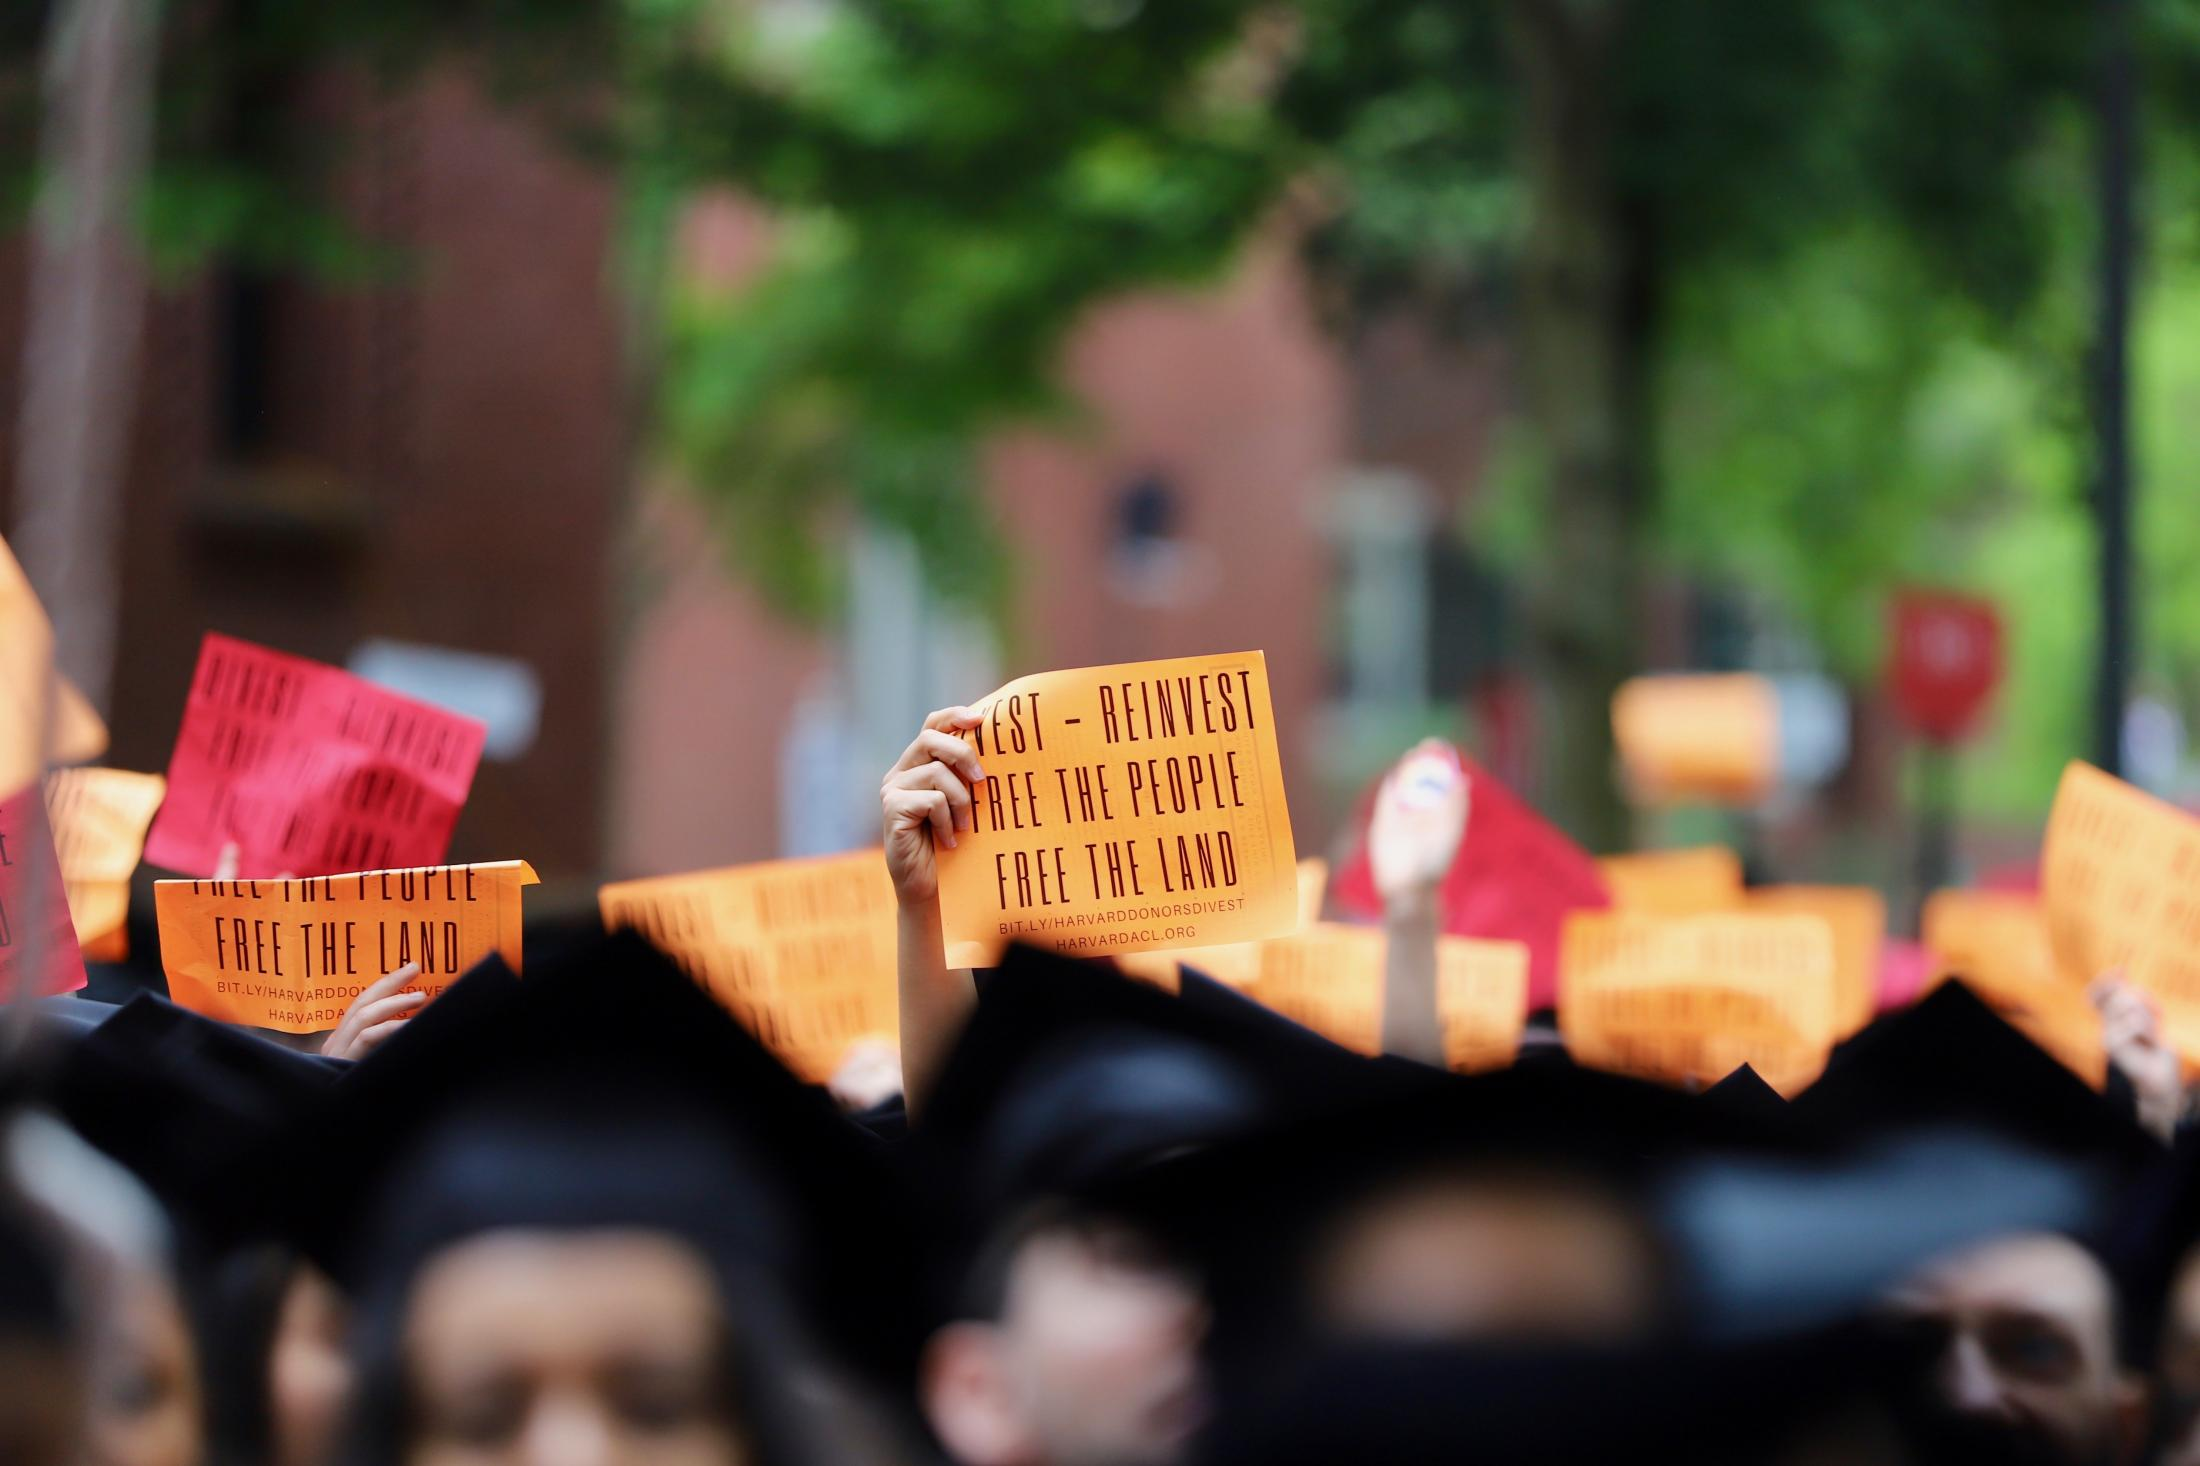 Protestors raised signs demanding that Harvard Divest from Fossil Fuels during Harvard Commencement ceremony in 2019.